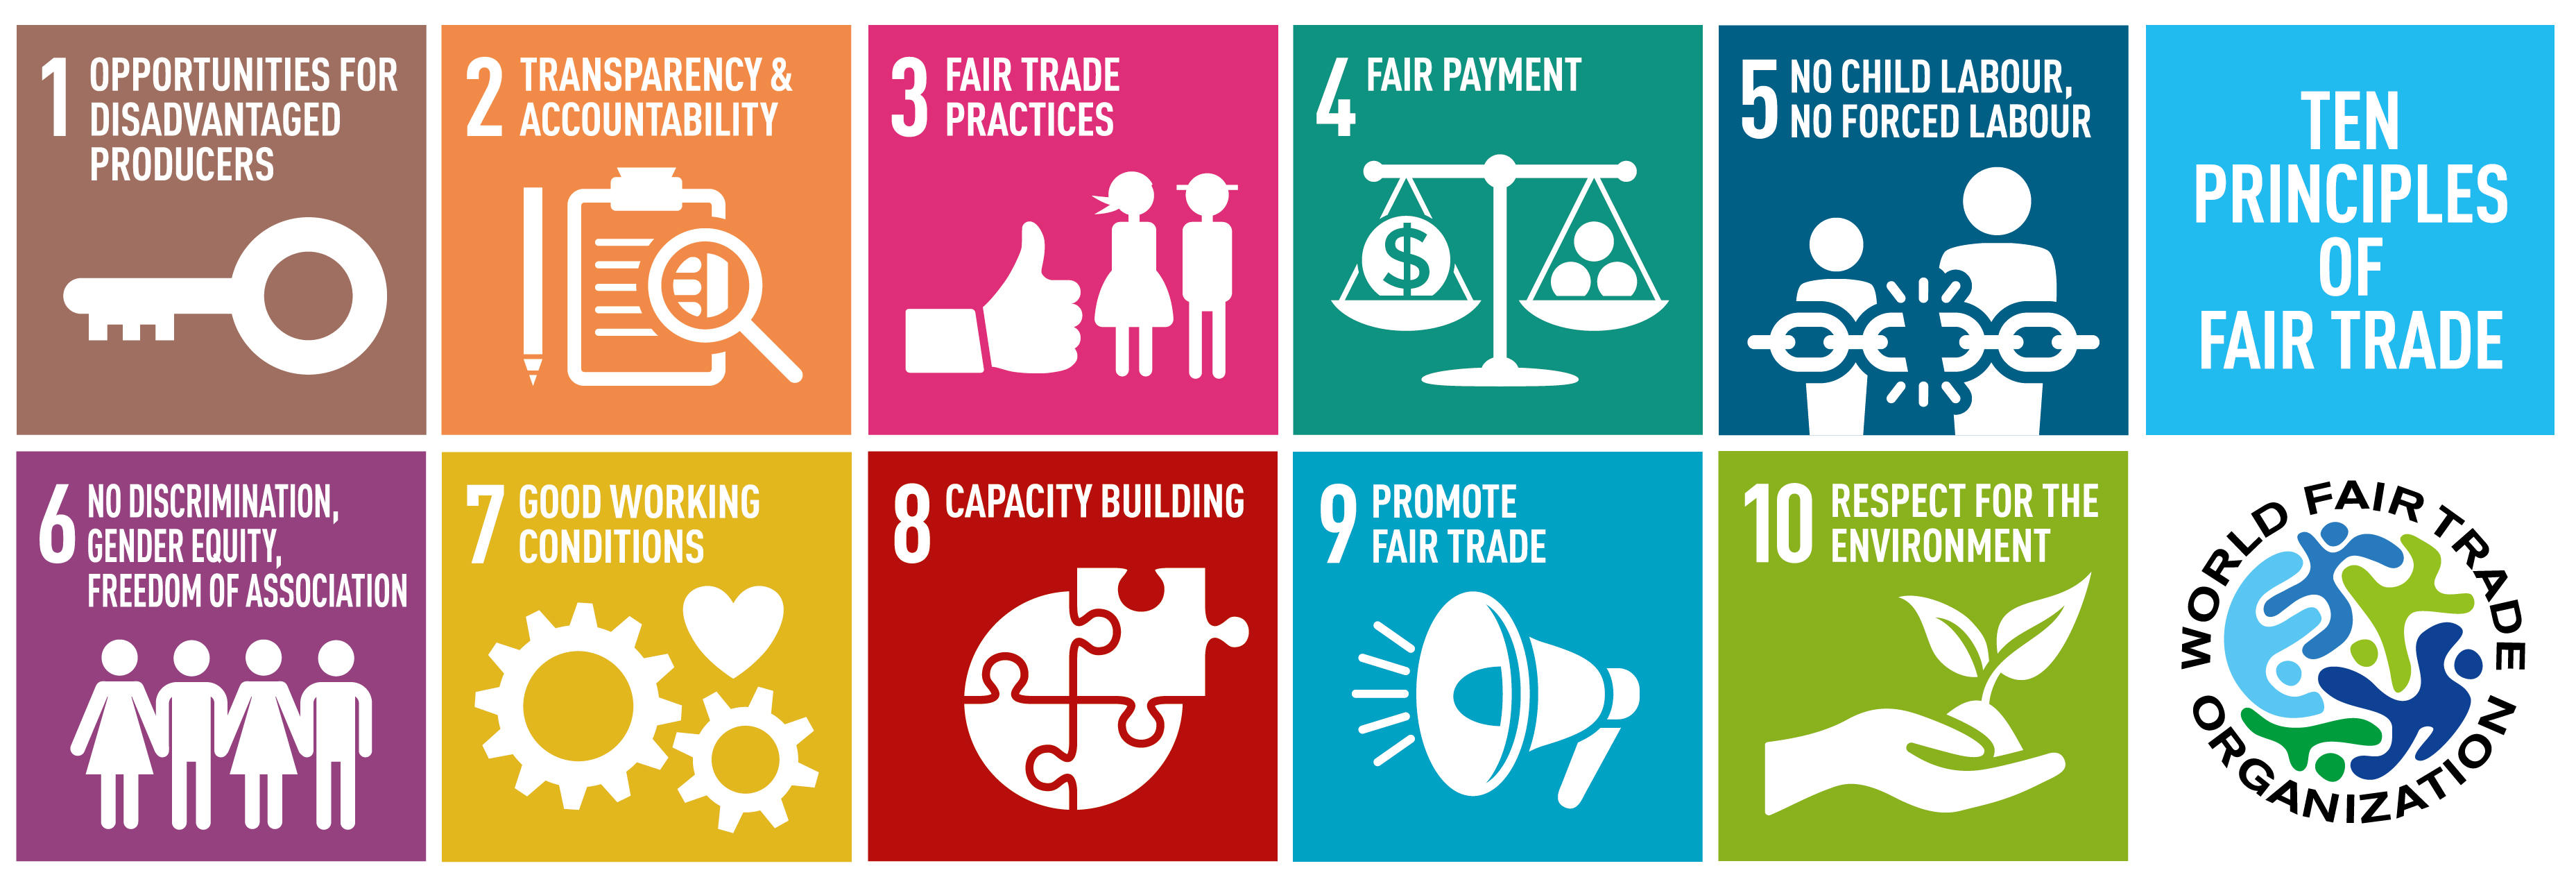 Ethical marketing fair trade principles